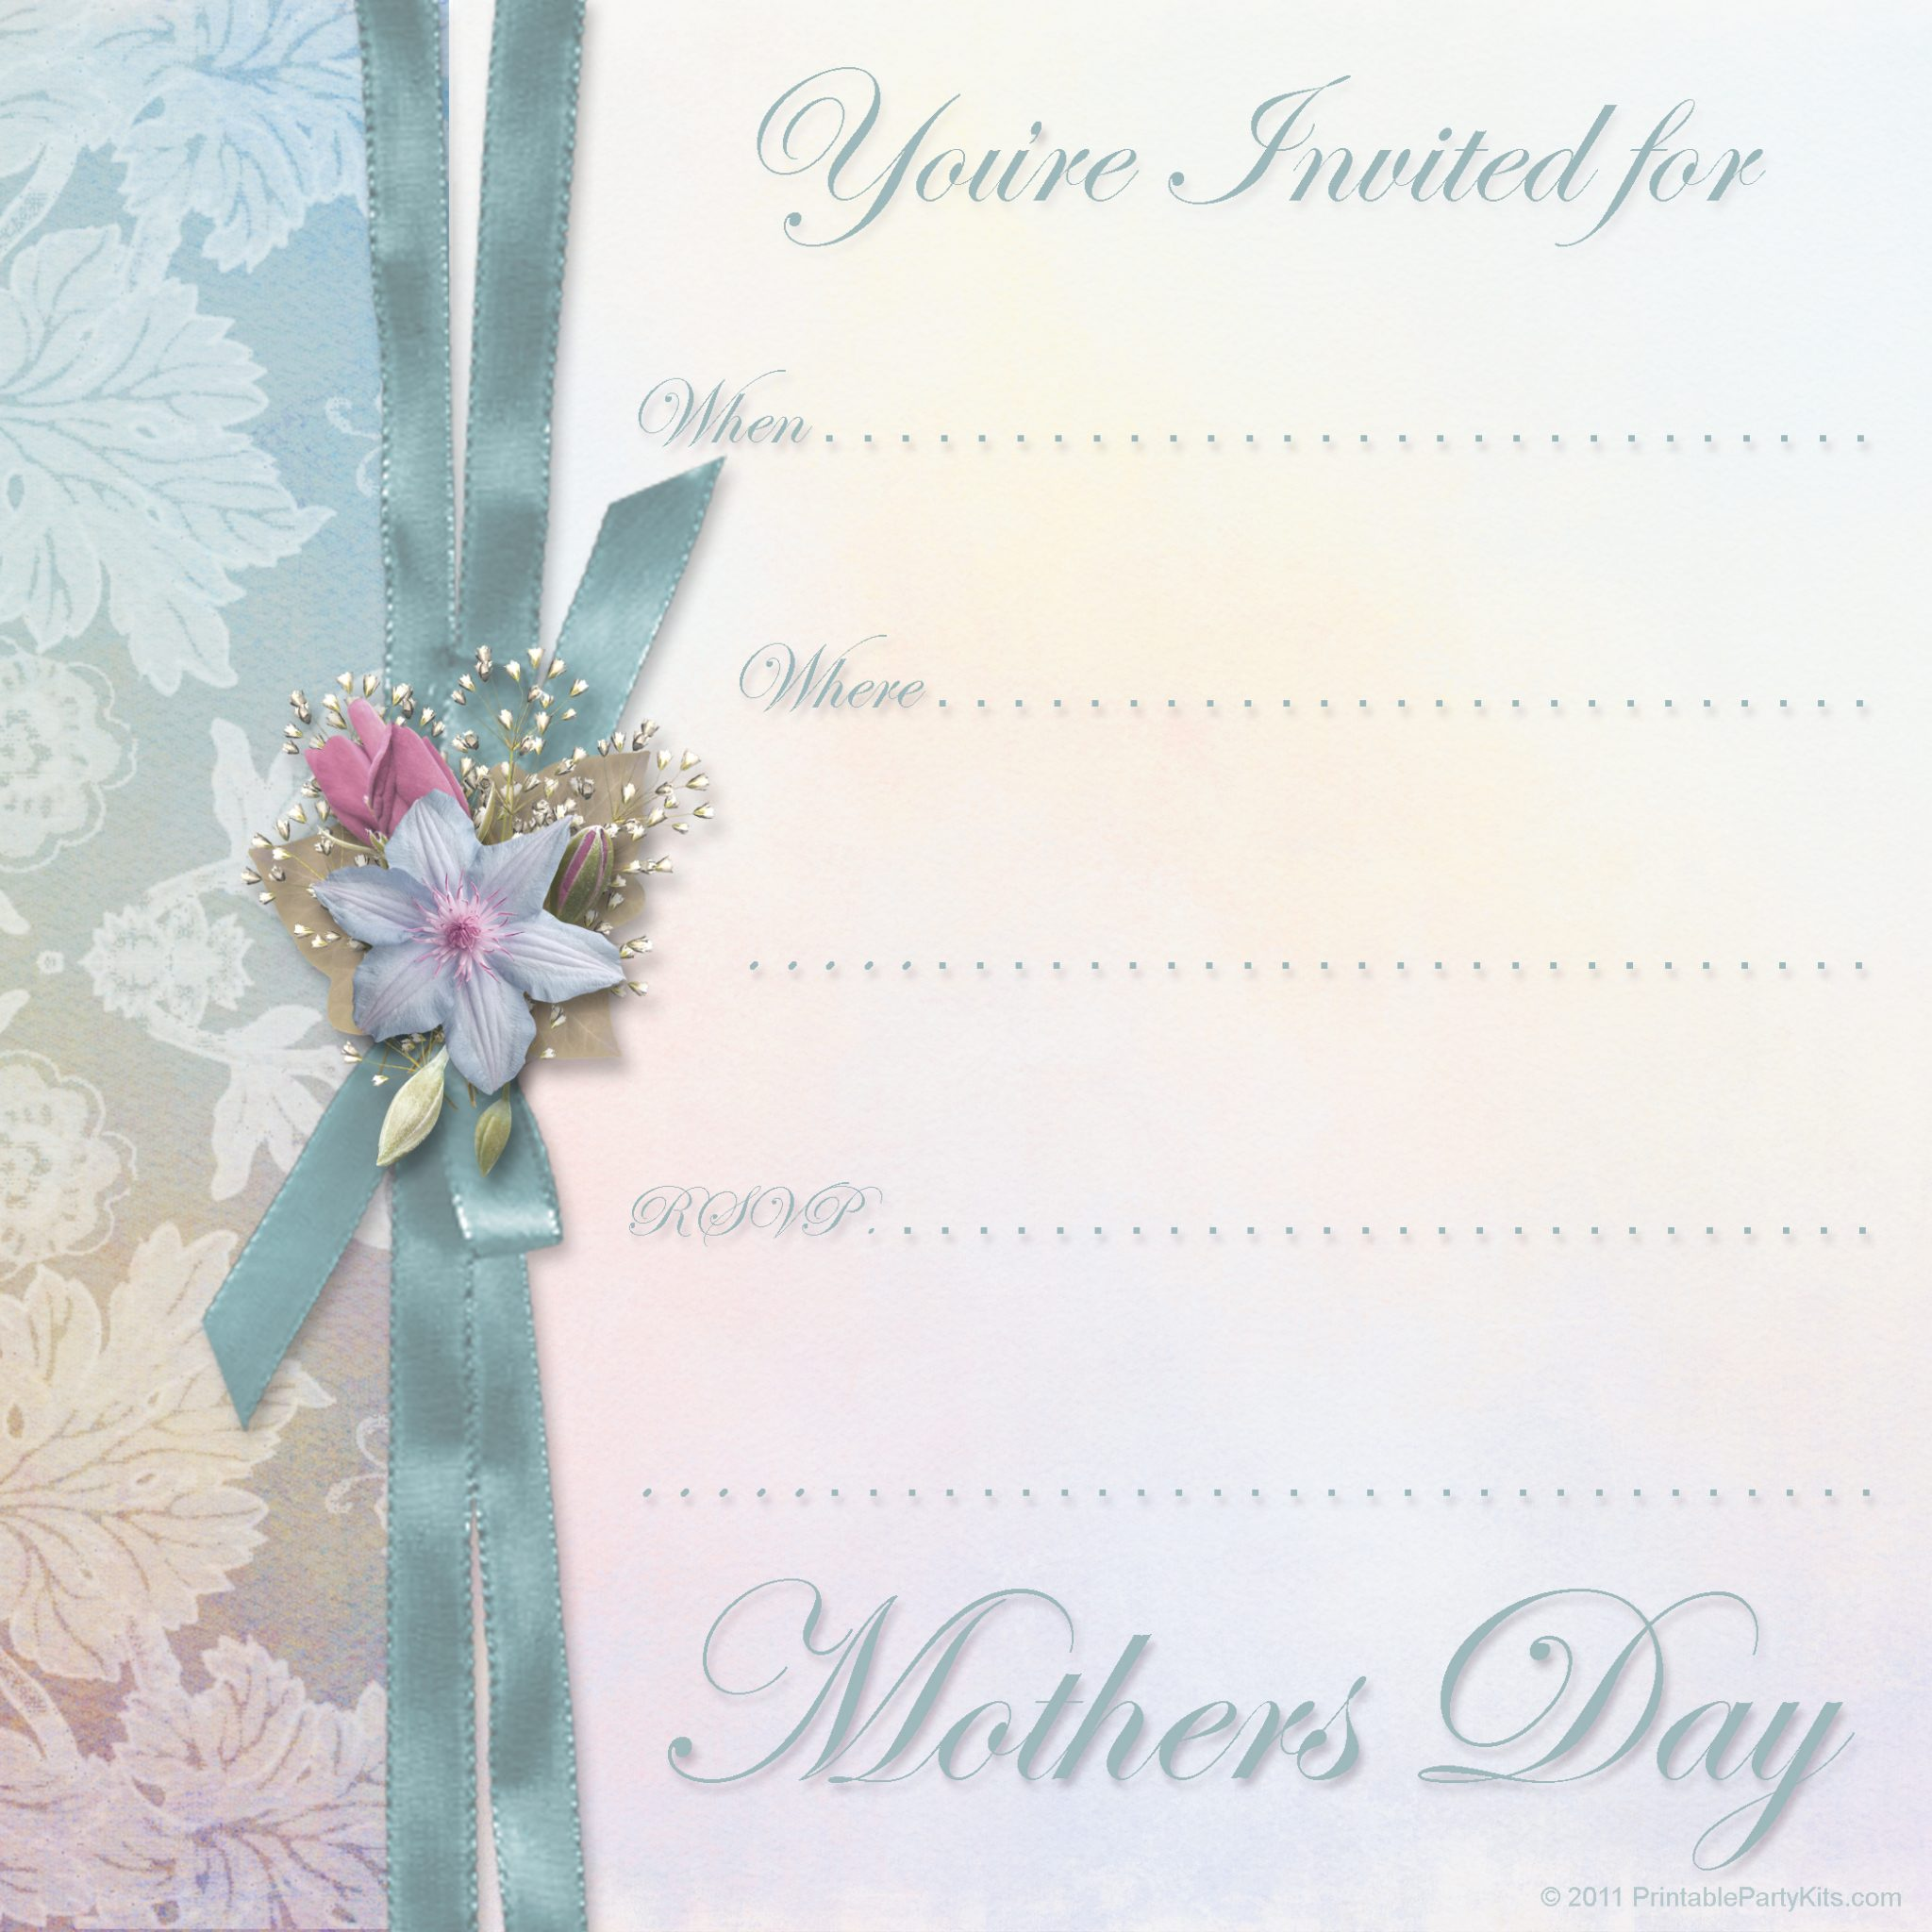 mothers day invitation template printable party kits. Black Bedroom Furniture Sets. Home Design Ideas